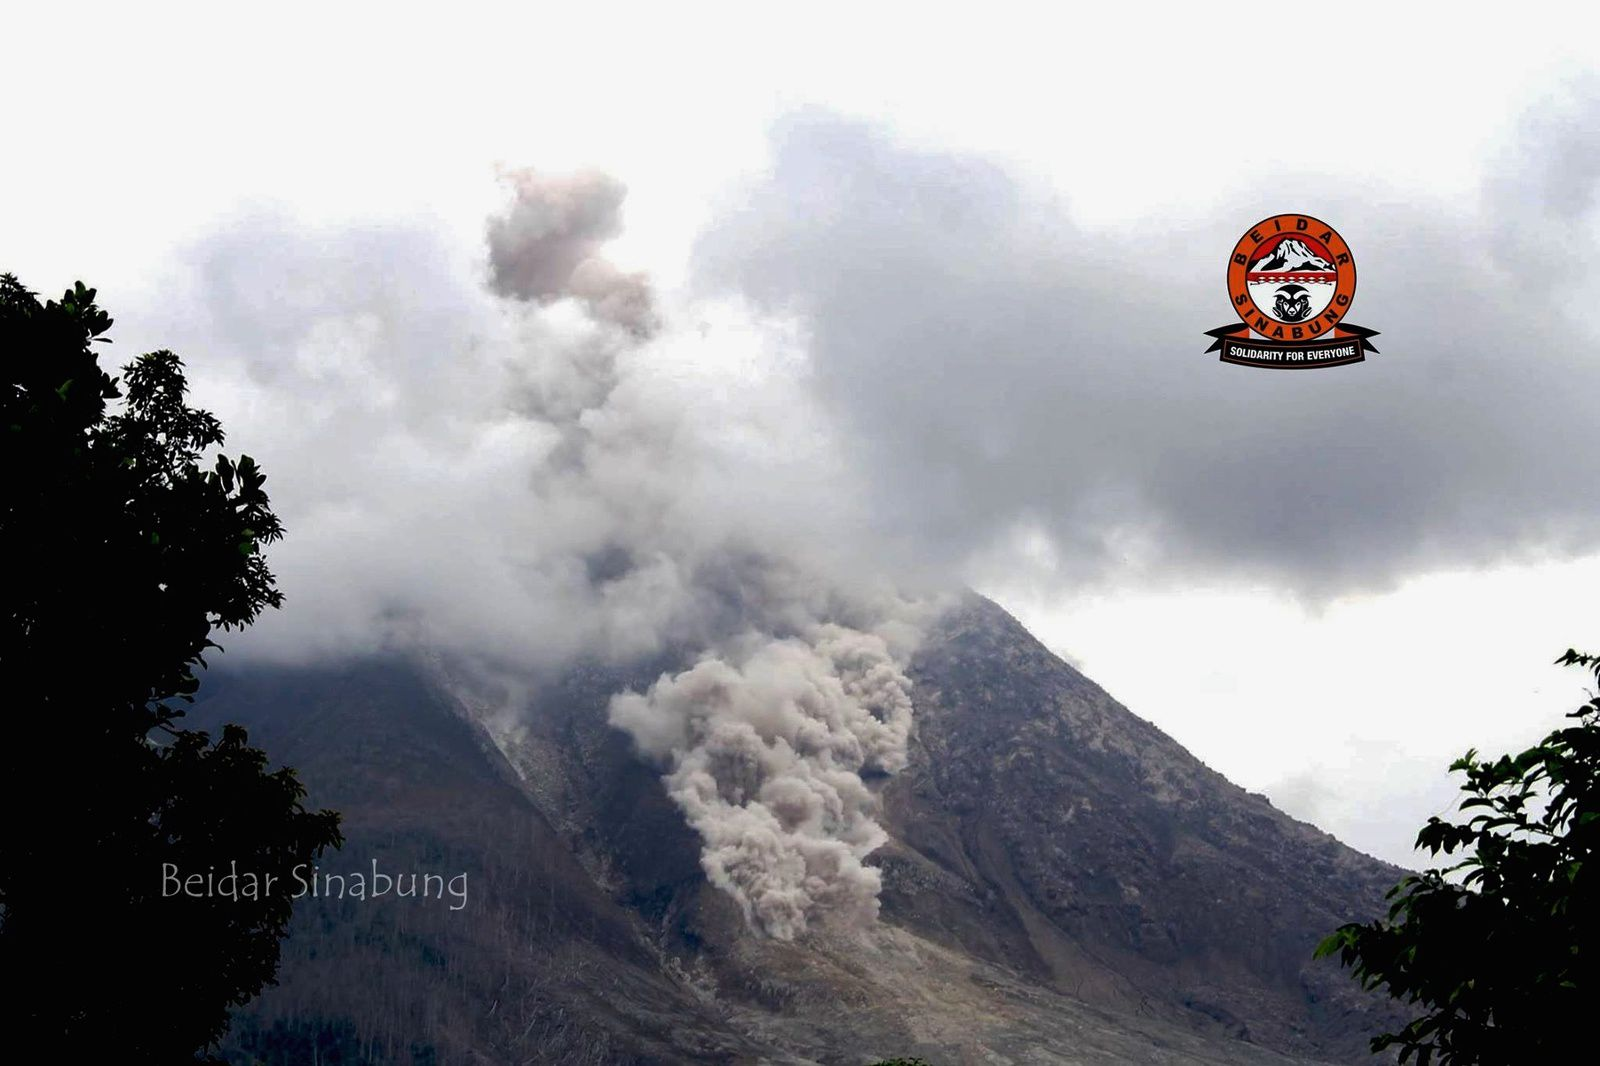 Sinabung: small pyroclastic flow on 5 june 2015 / 11h loc - photo Beidar Sinabung